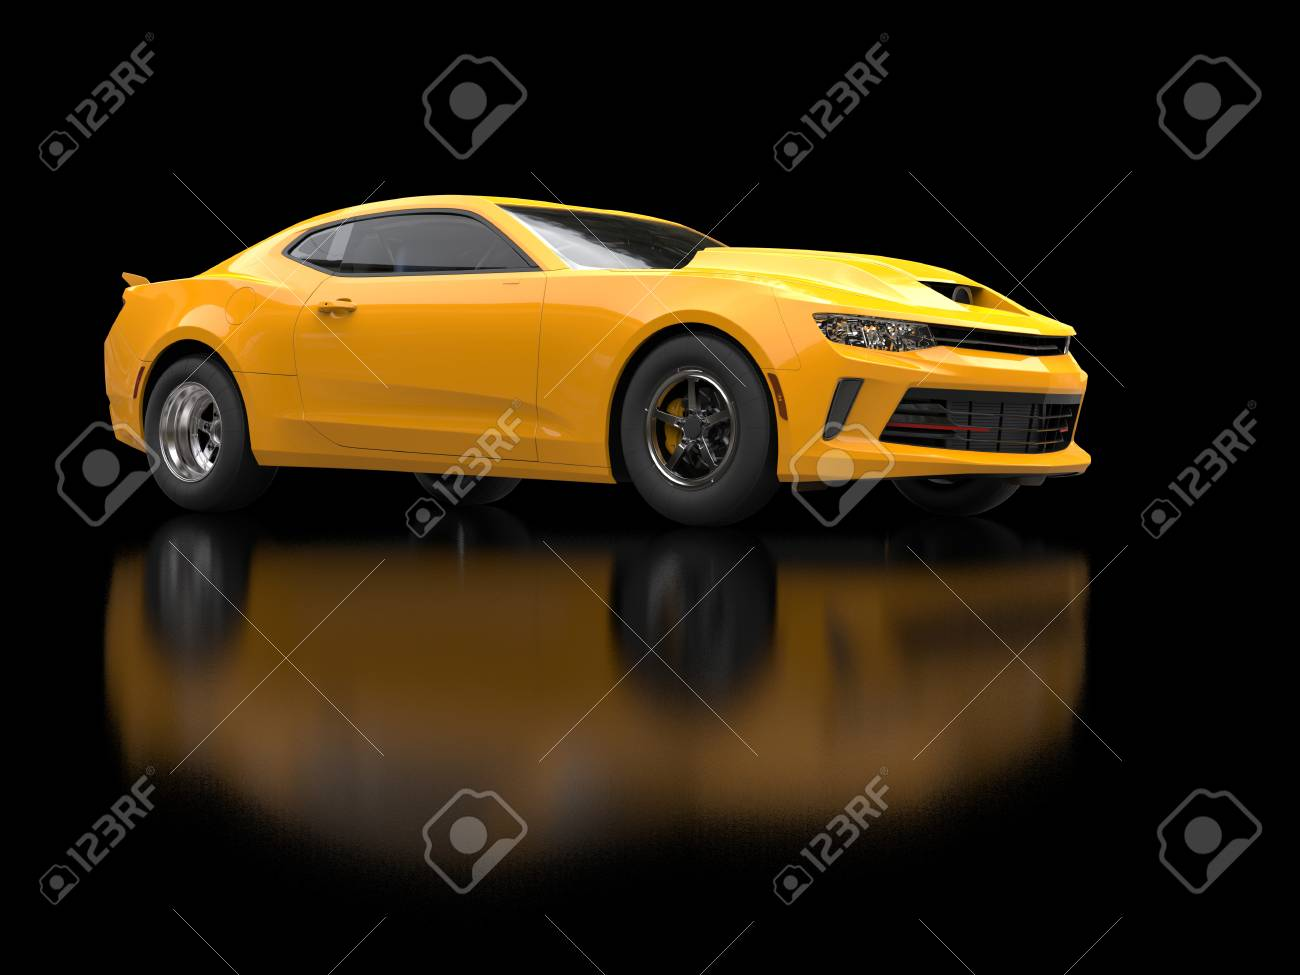 Awesome Sun Yellow Muscle Car On Black Background Stock Photo ...